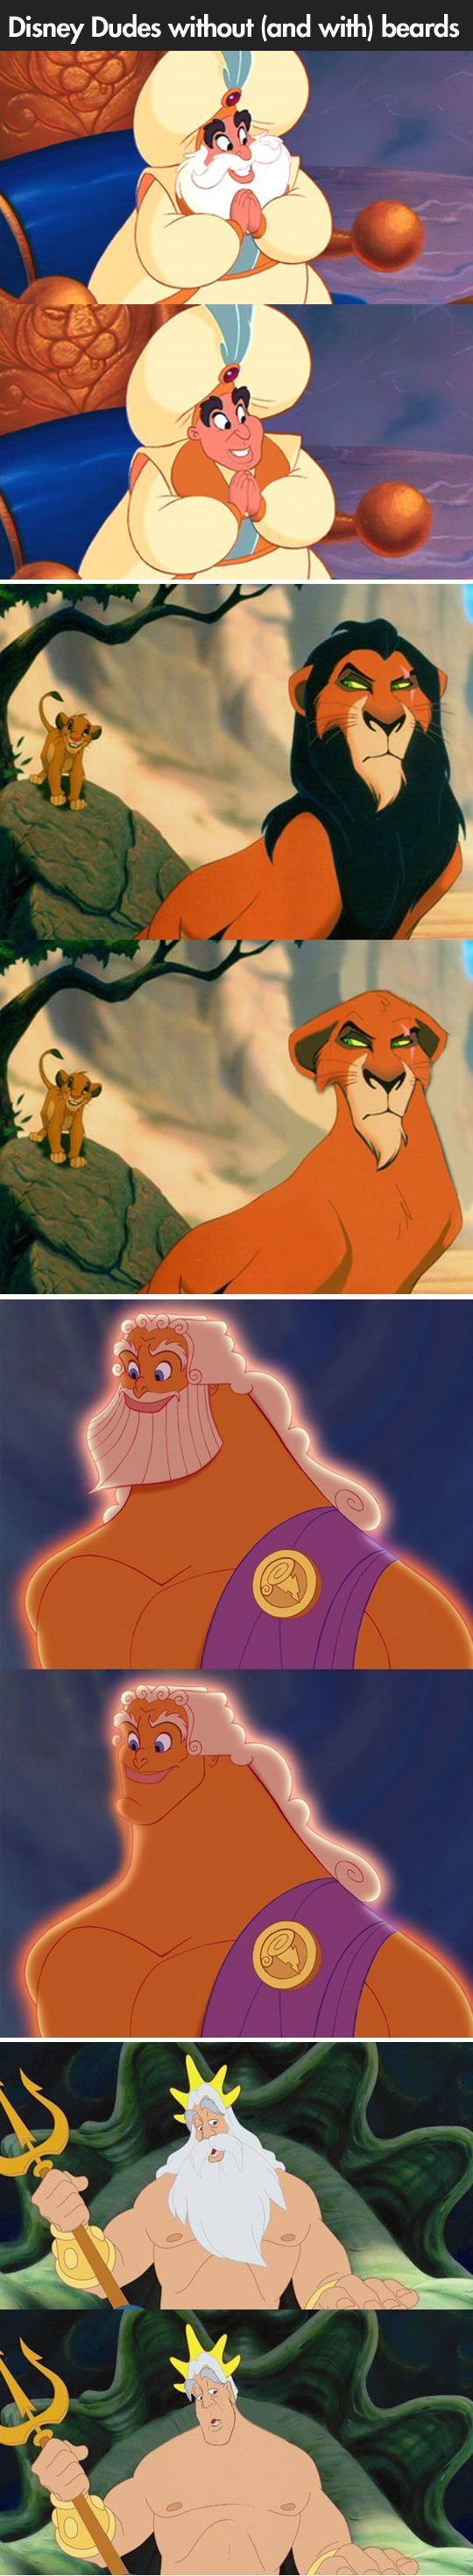 What happens when you remove the beards from famous Disney characters.